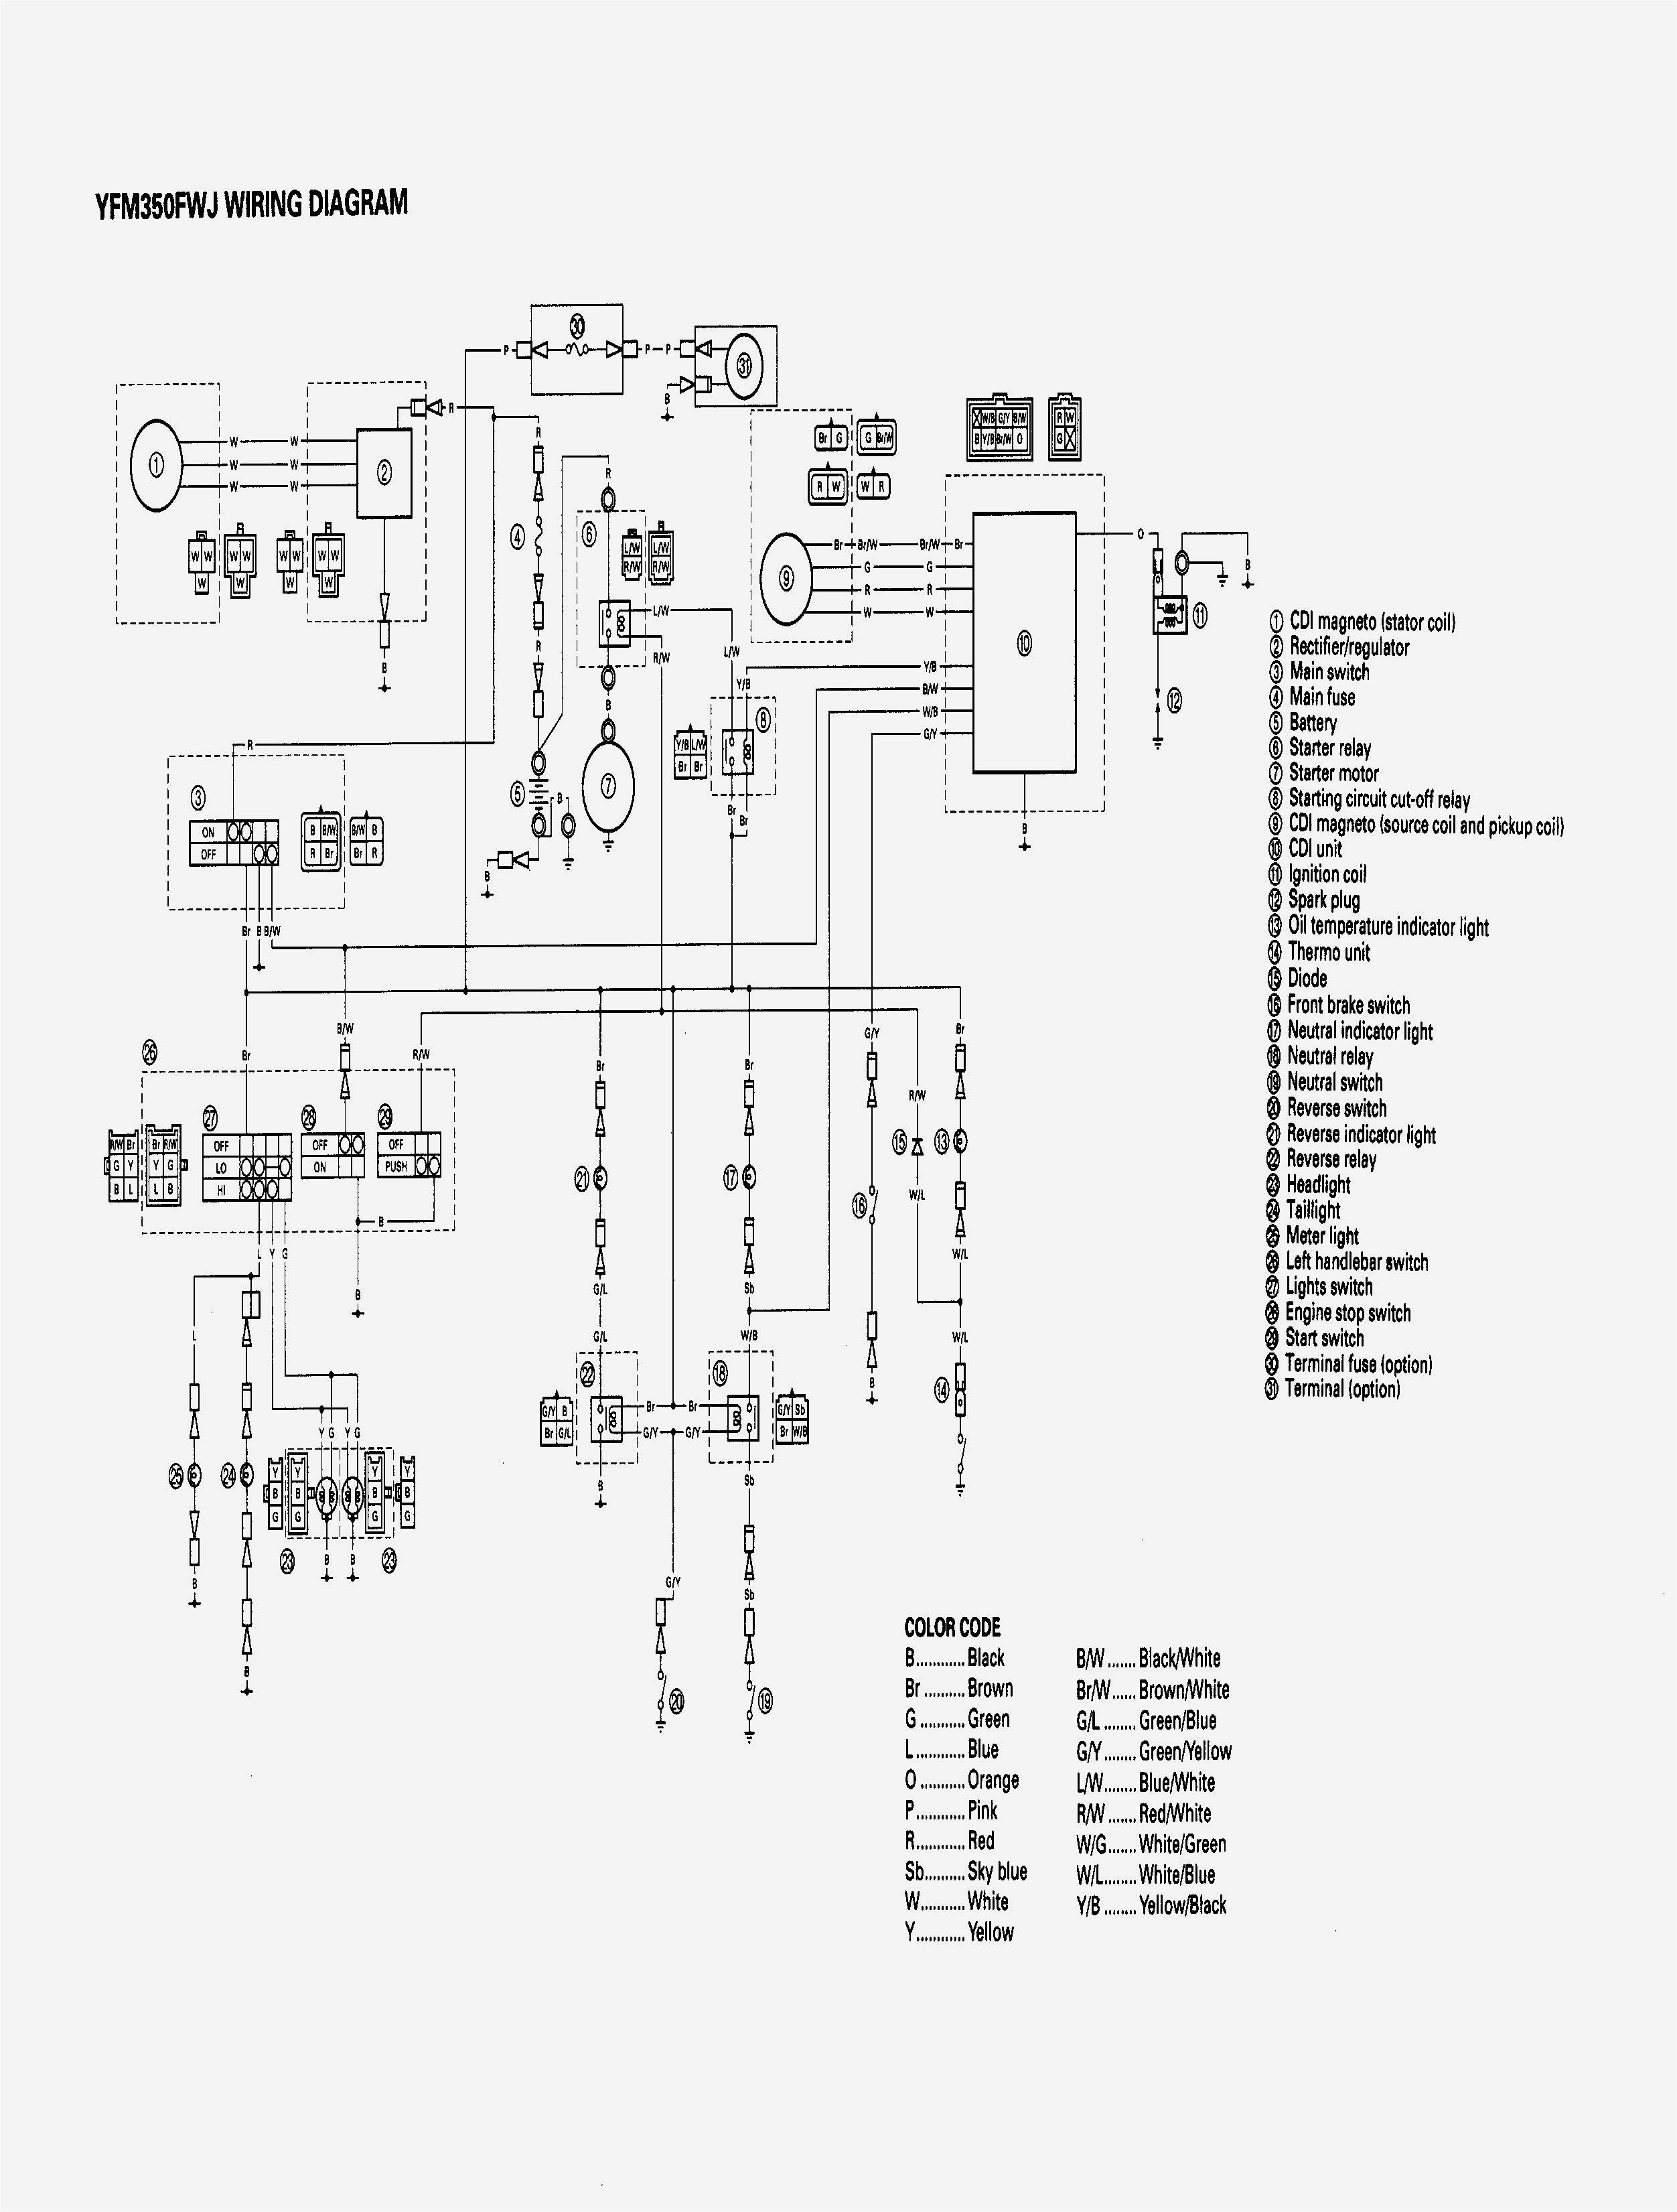 Fresh Wiring Diagram Yamaha Aerox Diagrams Digramssample